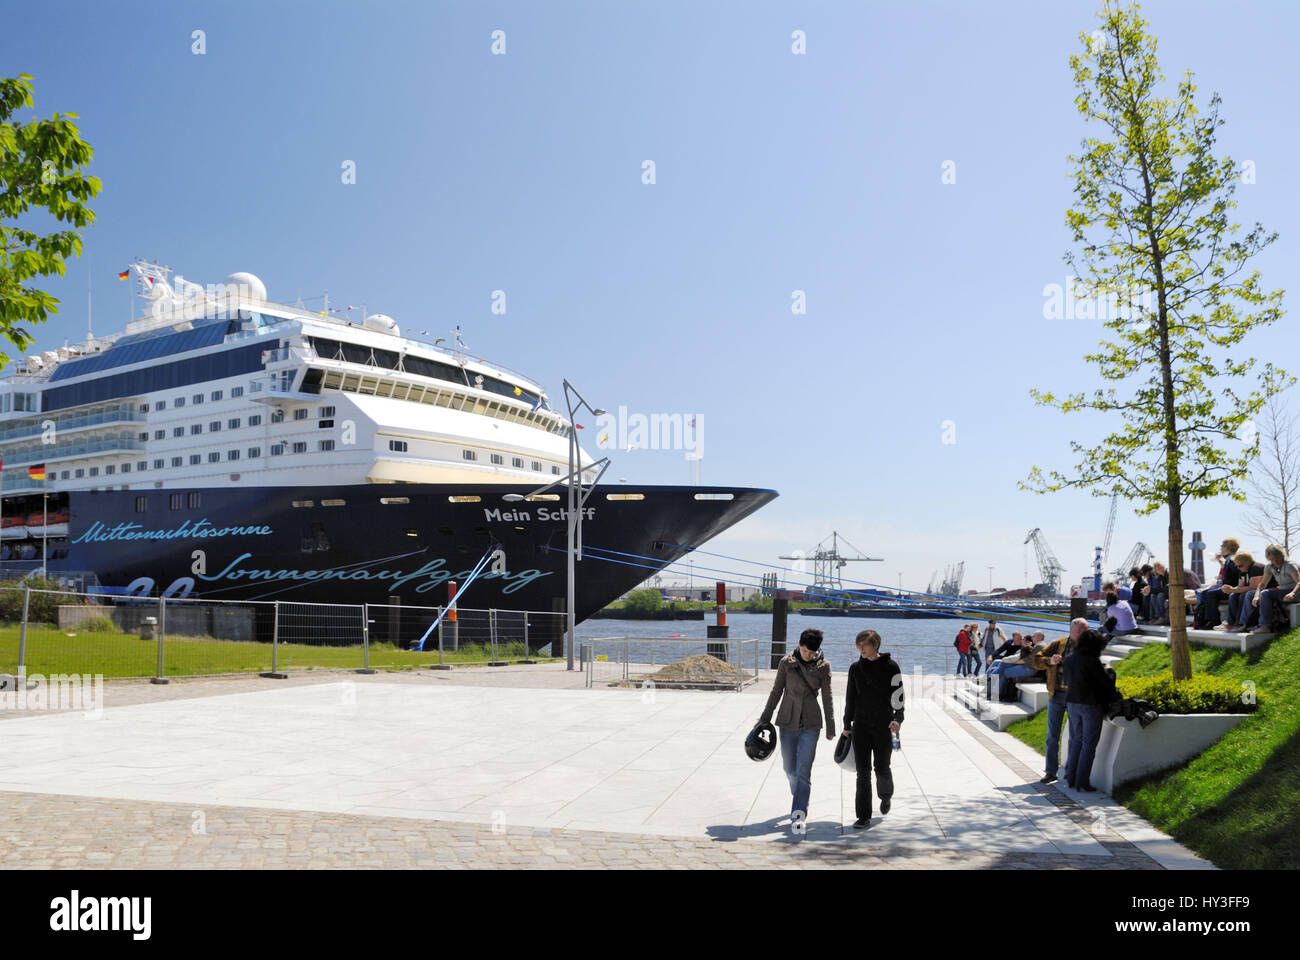 Cruise terminal and beach quay in the harbour city of Hamburg, Germany, Europe, Kreuzfahrtterminal und Strandkai - Stock Image